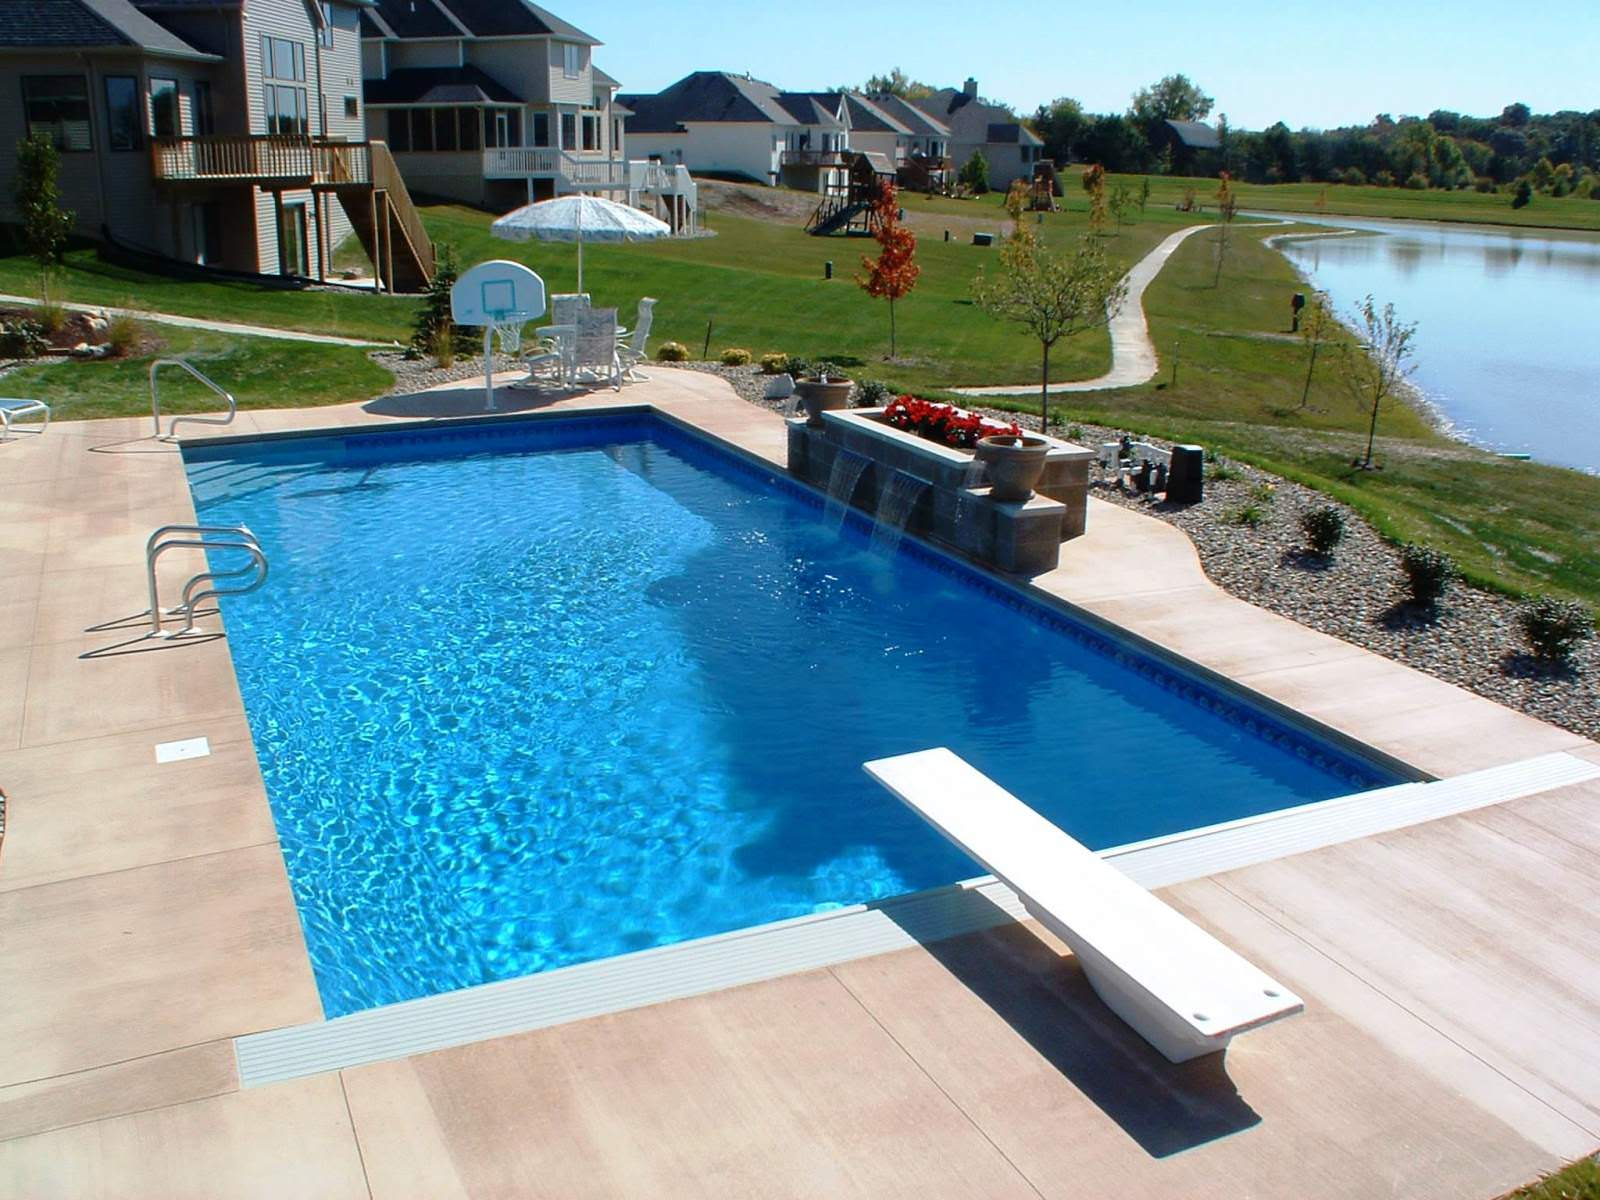 Landscaping Ideas For Small Rectangular Backyards With Pool 24 Small Pool Ideas To Turn Your Small Backyard Into ...